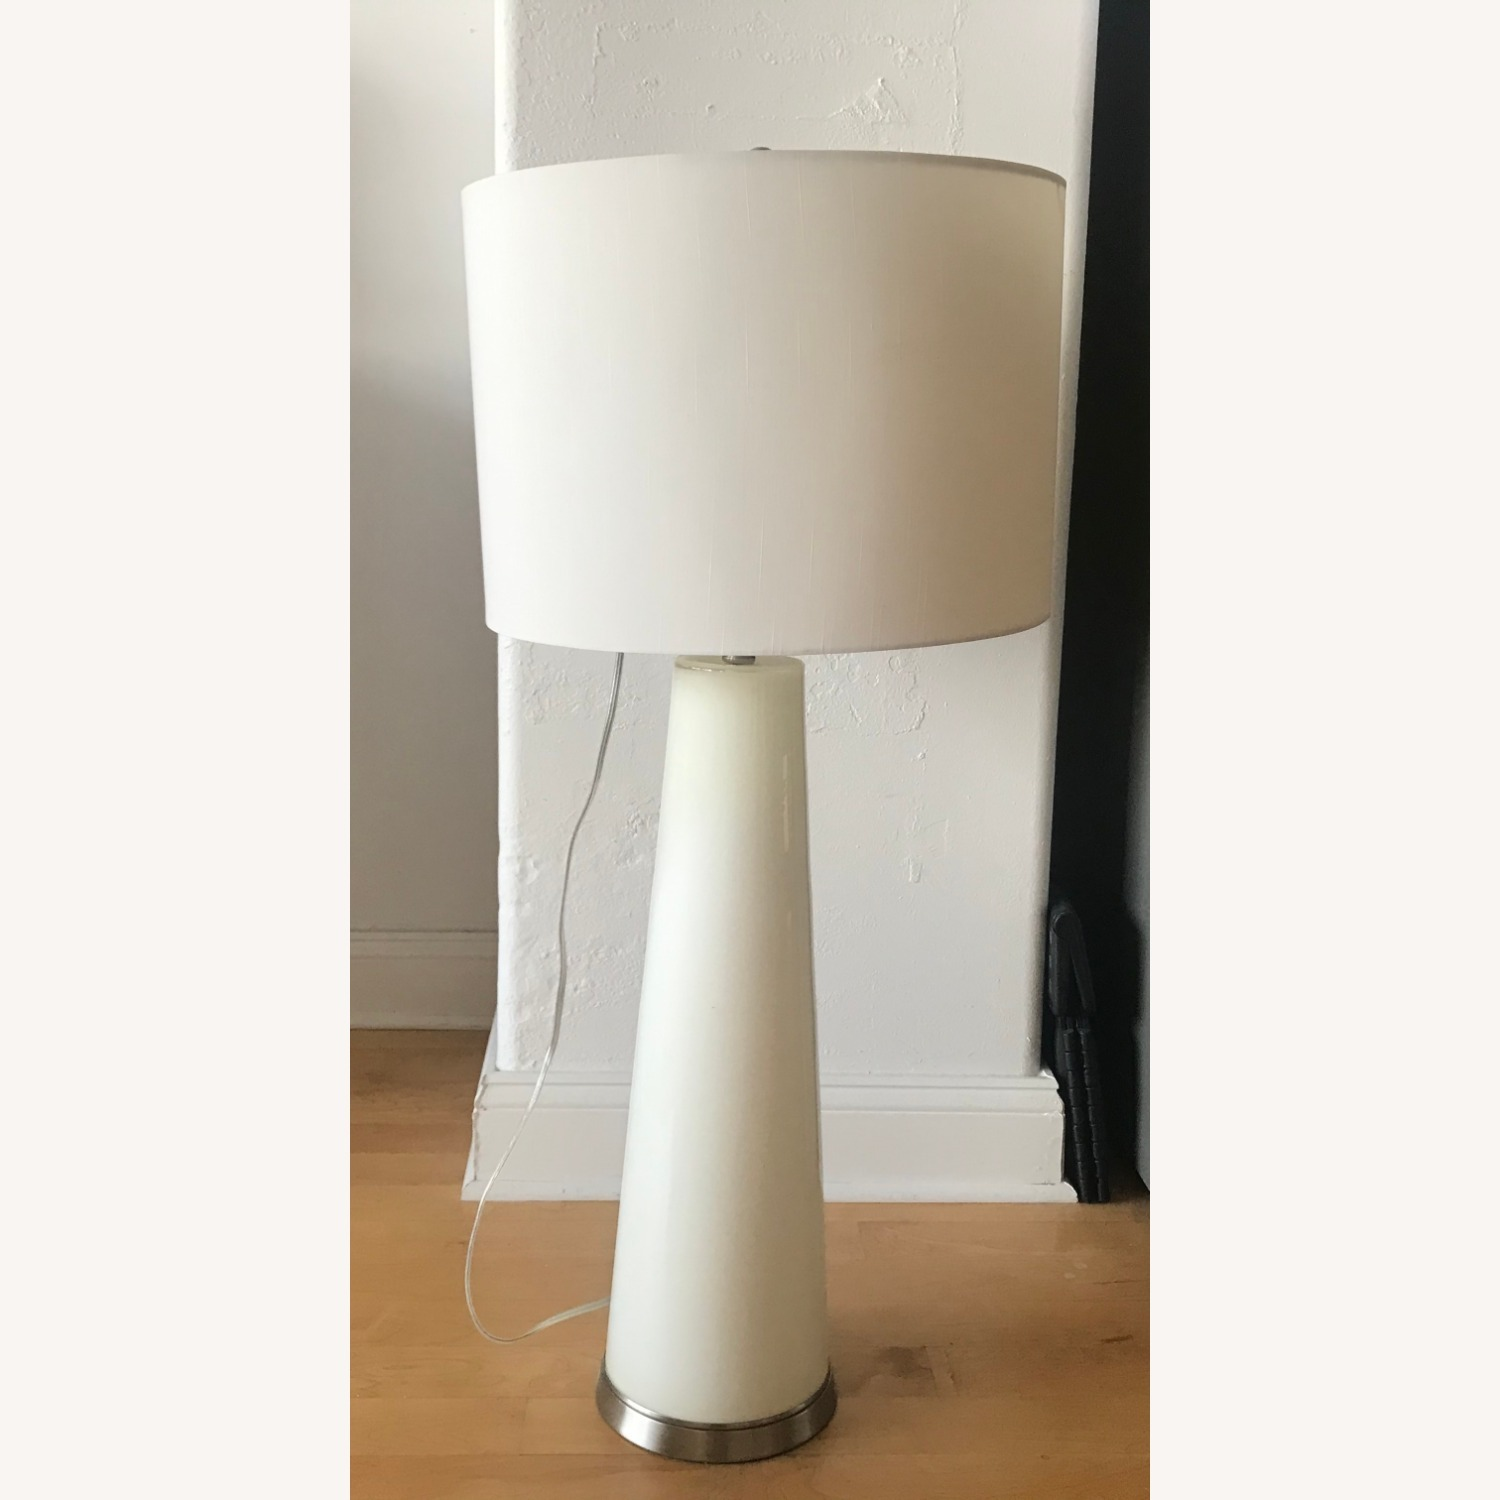 Z Gallerie Century Table Lamps (set of 2) - image-3